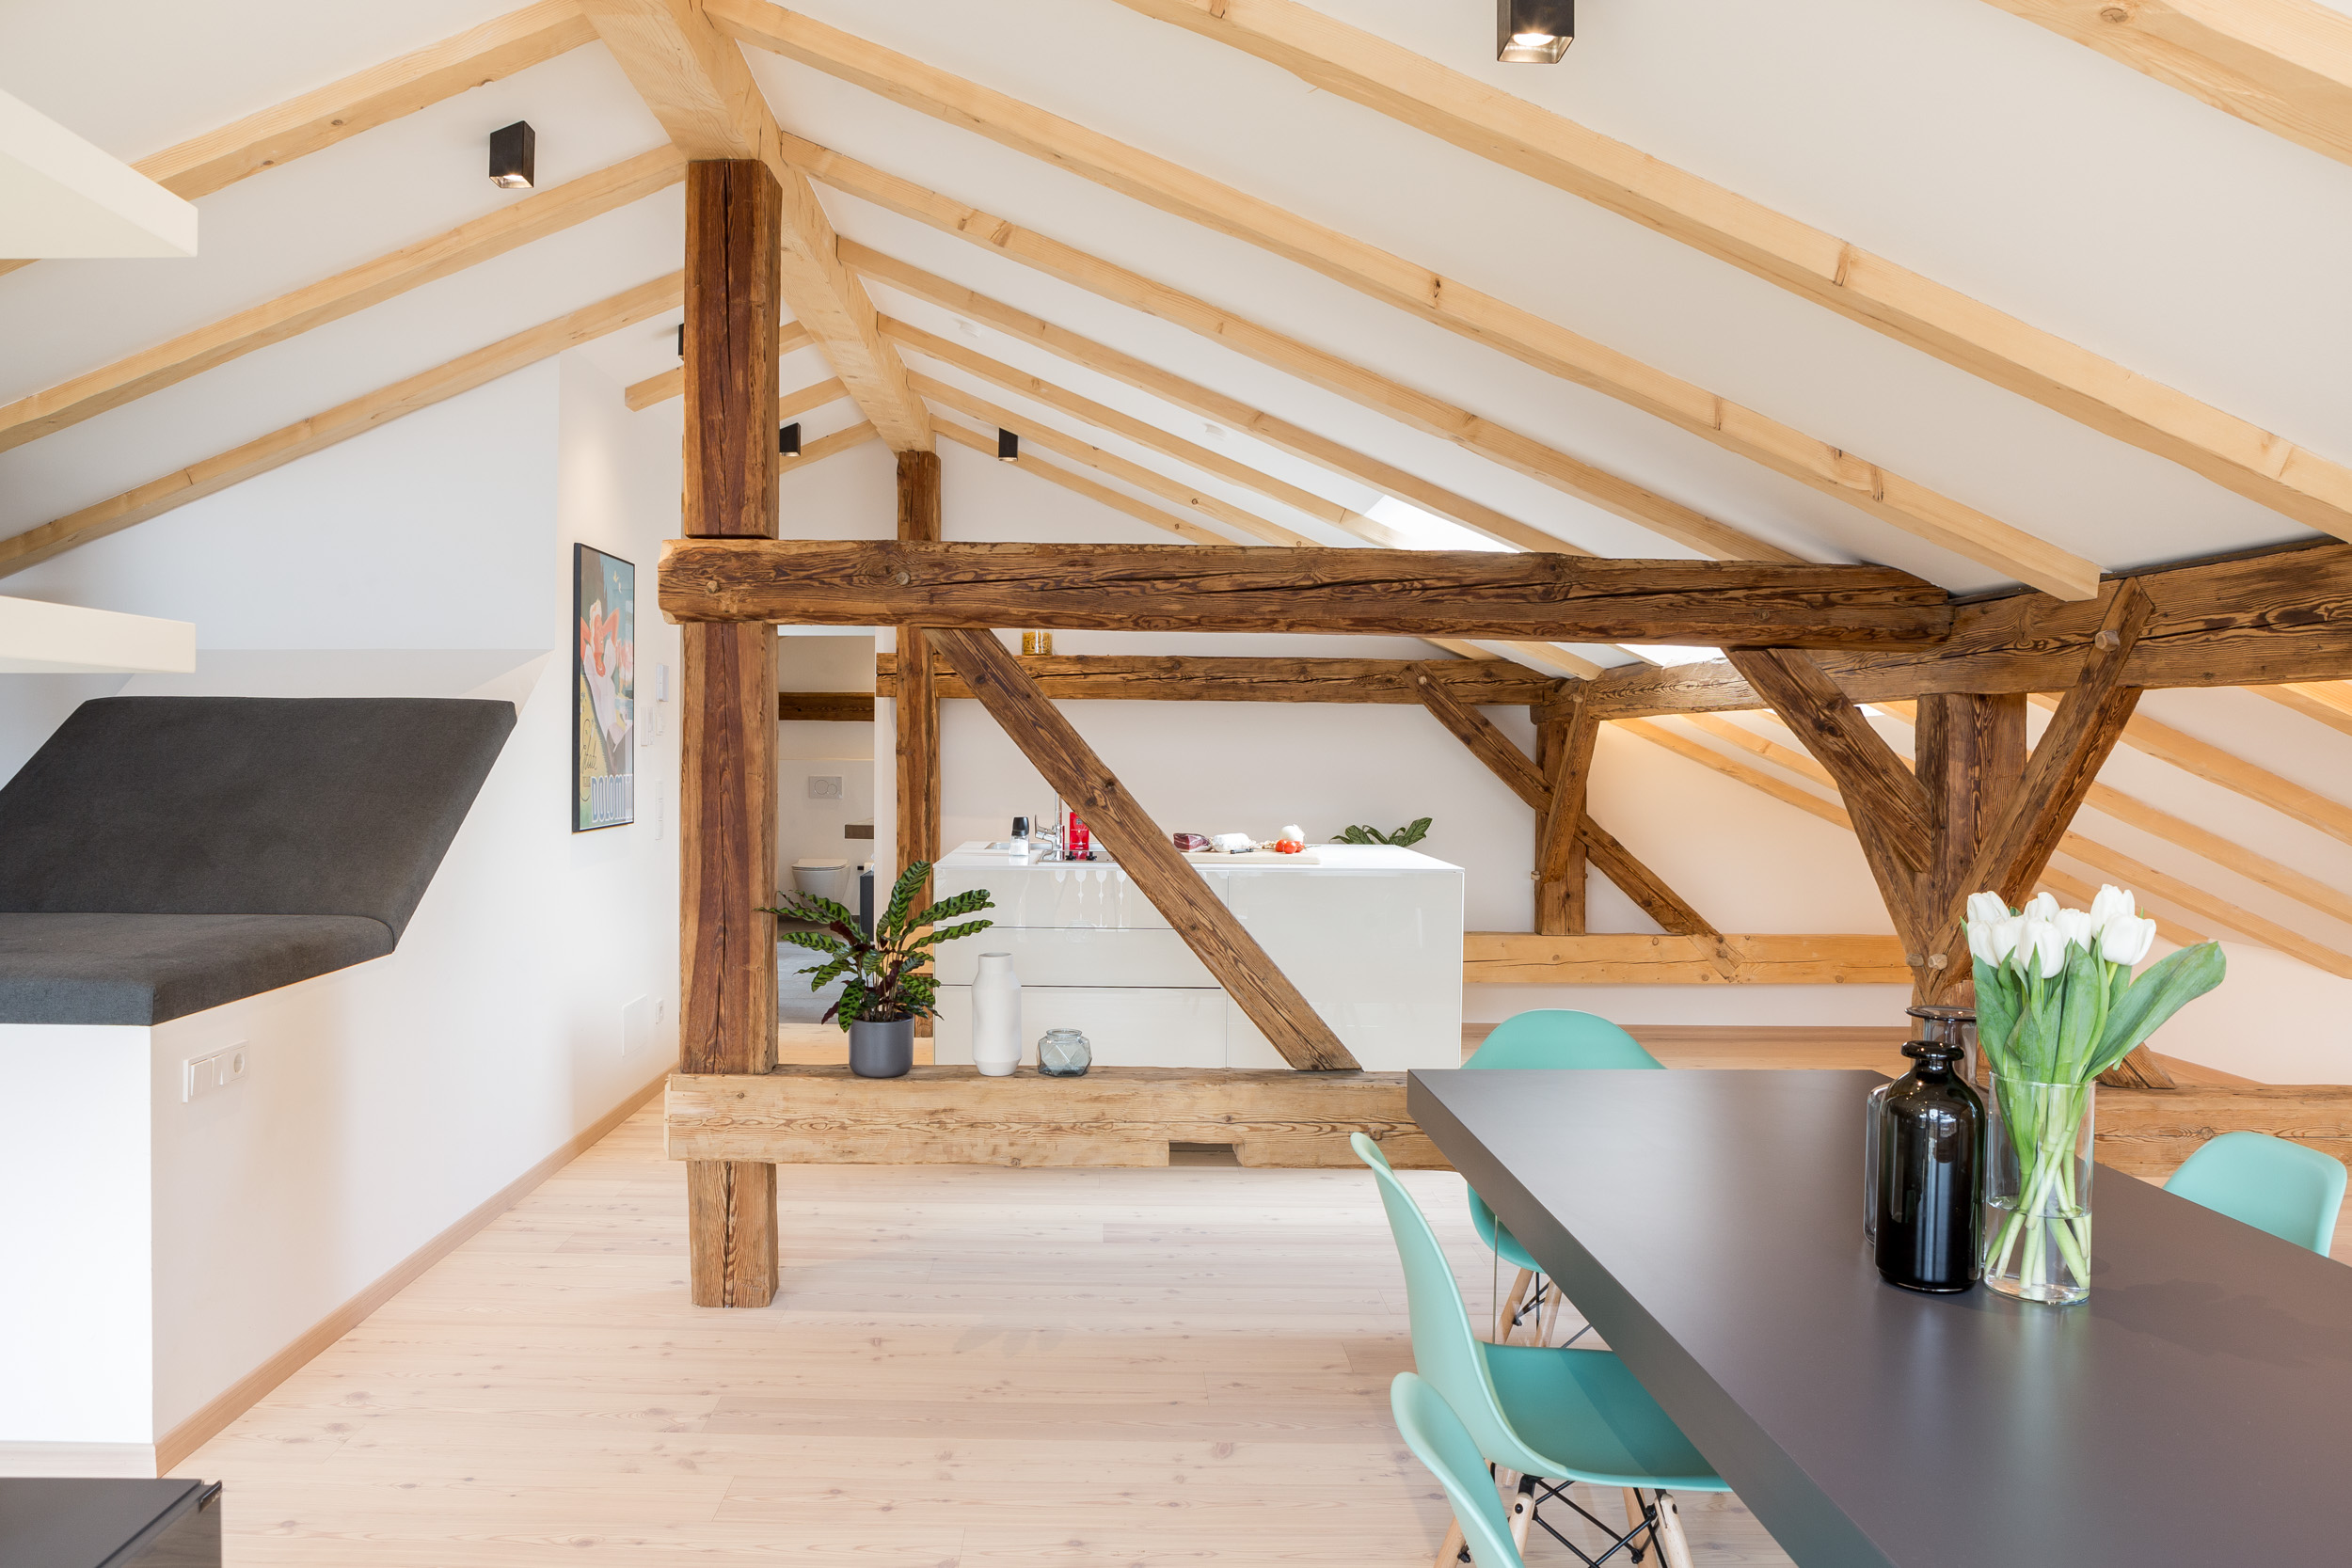 Apartment 5 - Design loft with a free-standing bathtub and private balcony overlooking a picturesque mountain landscape.